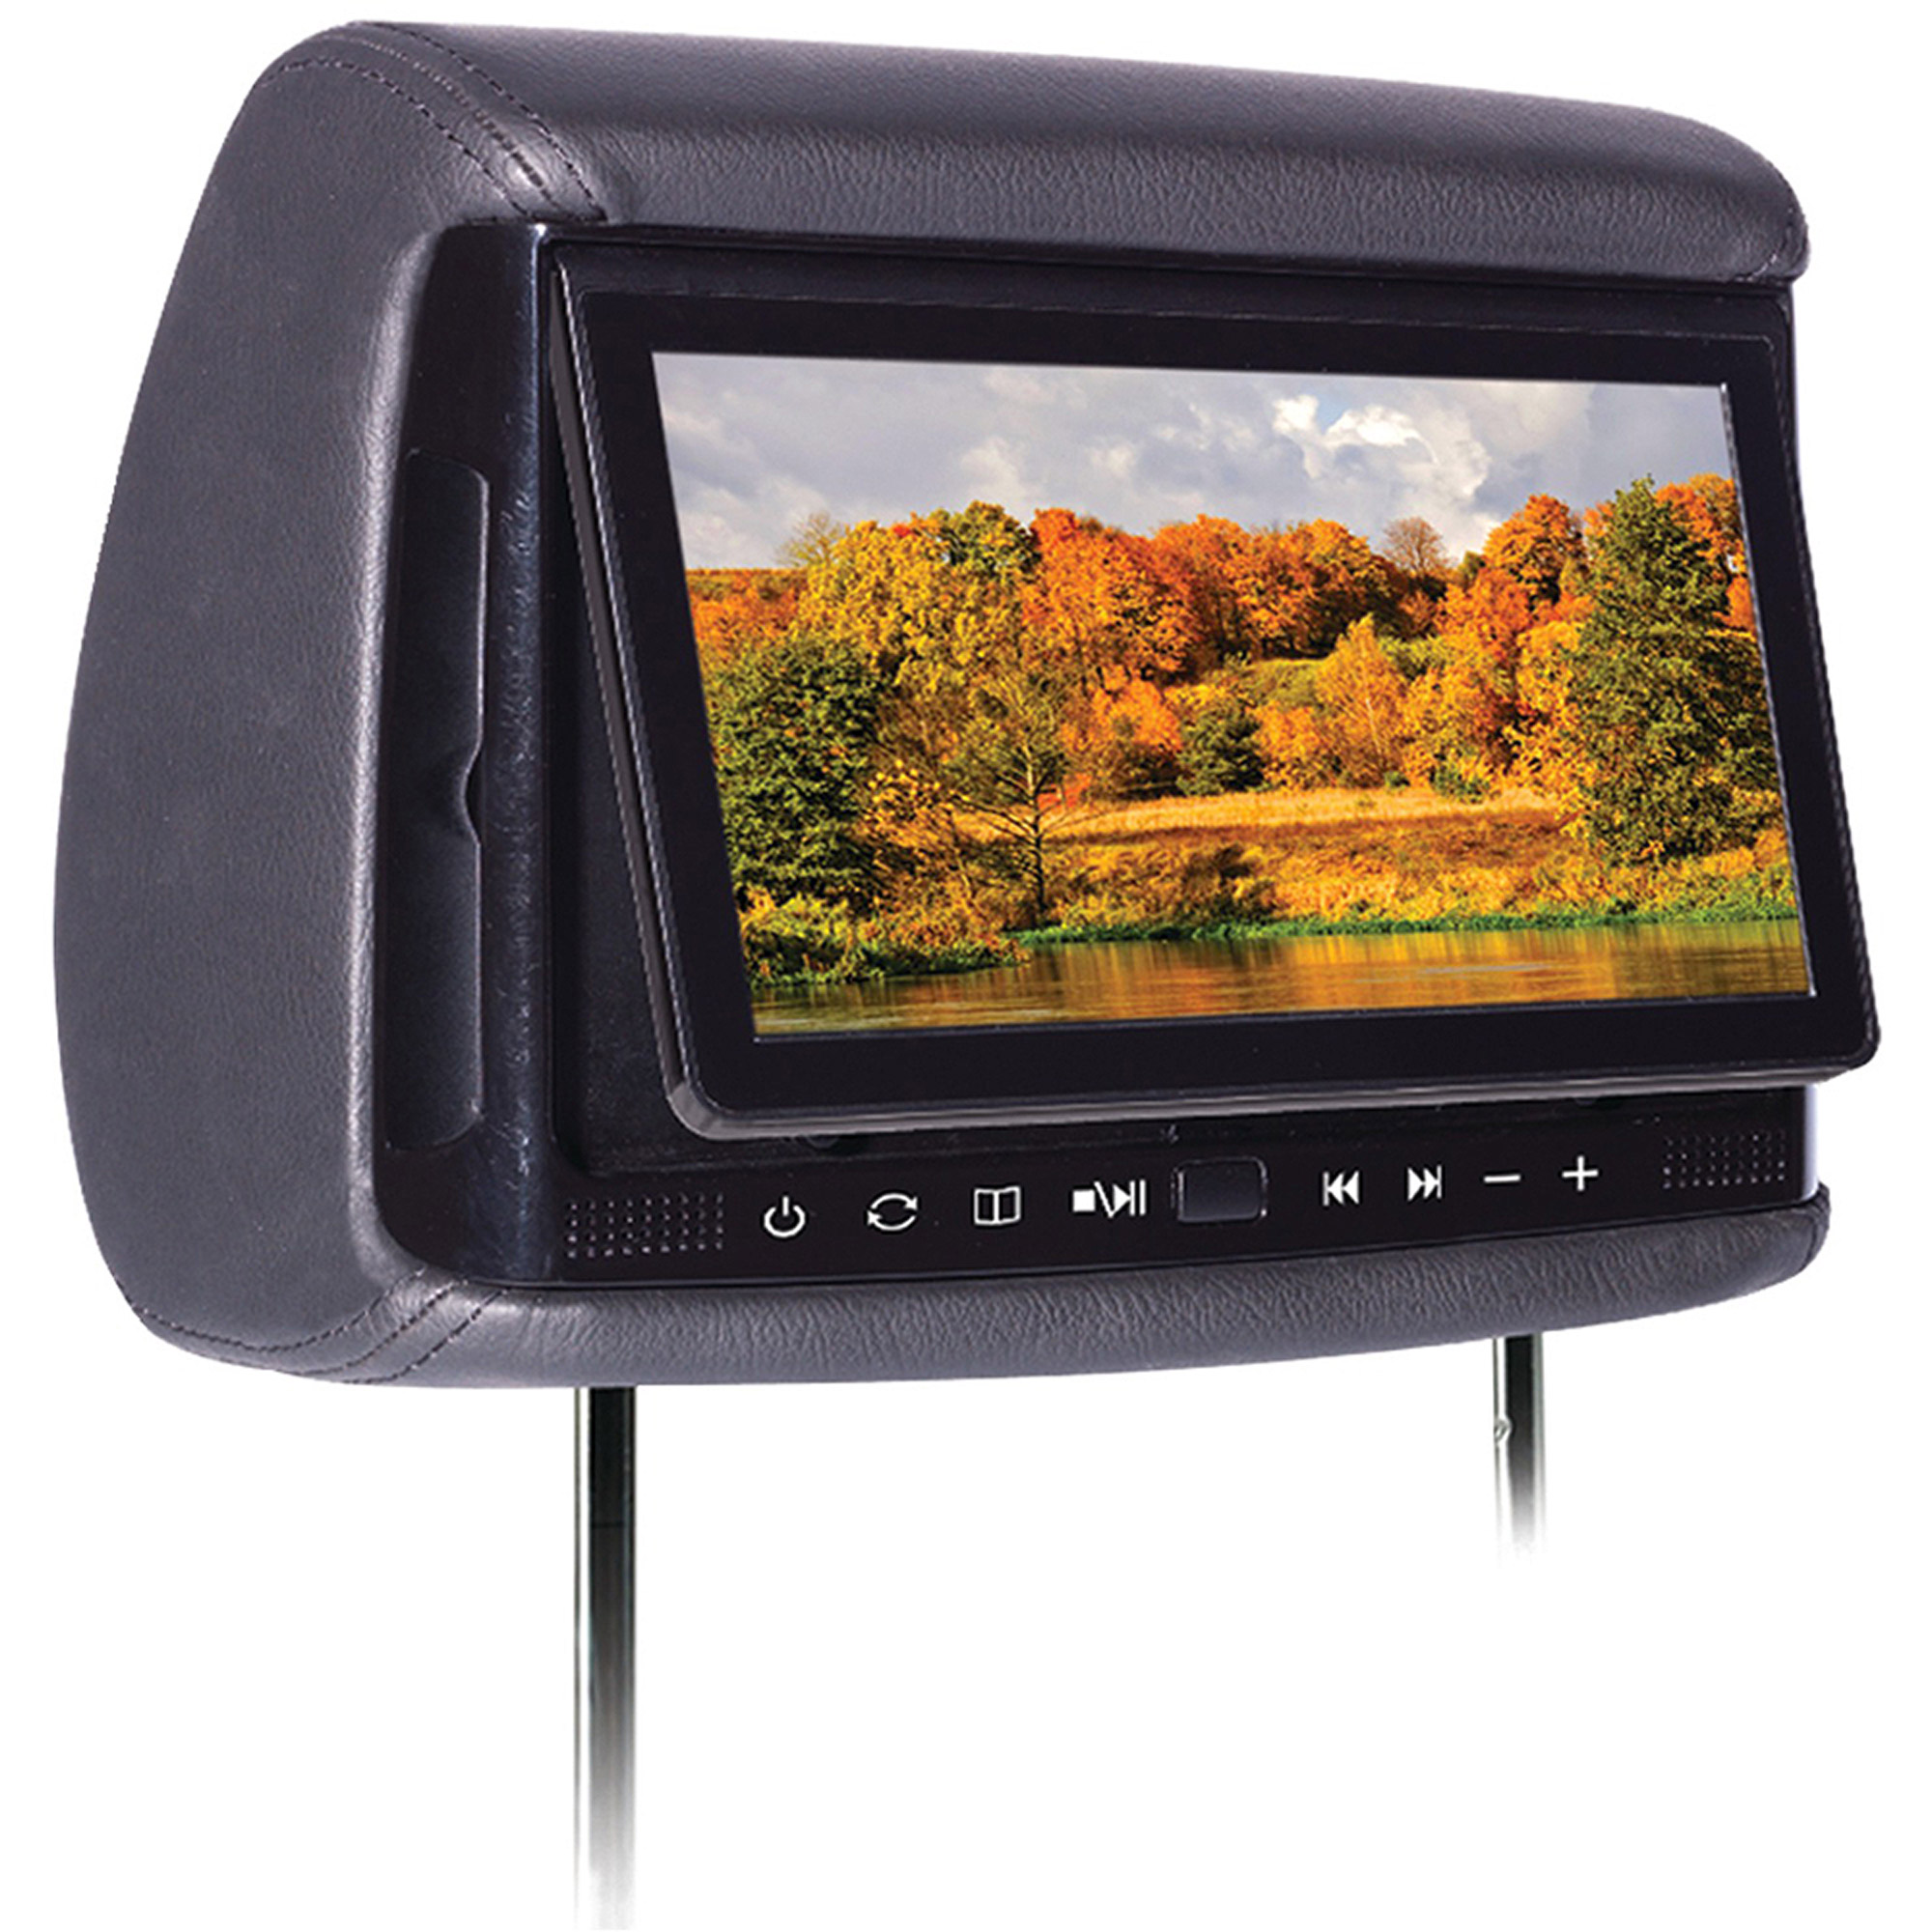 "Concept BSD-905M 9"" Chameleon Big Screen LCD Headrest Monitor with Wireless Screencasting and 3 Color Covers"